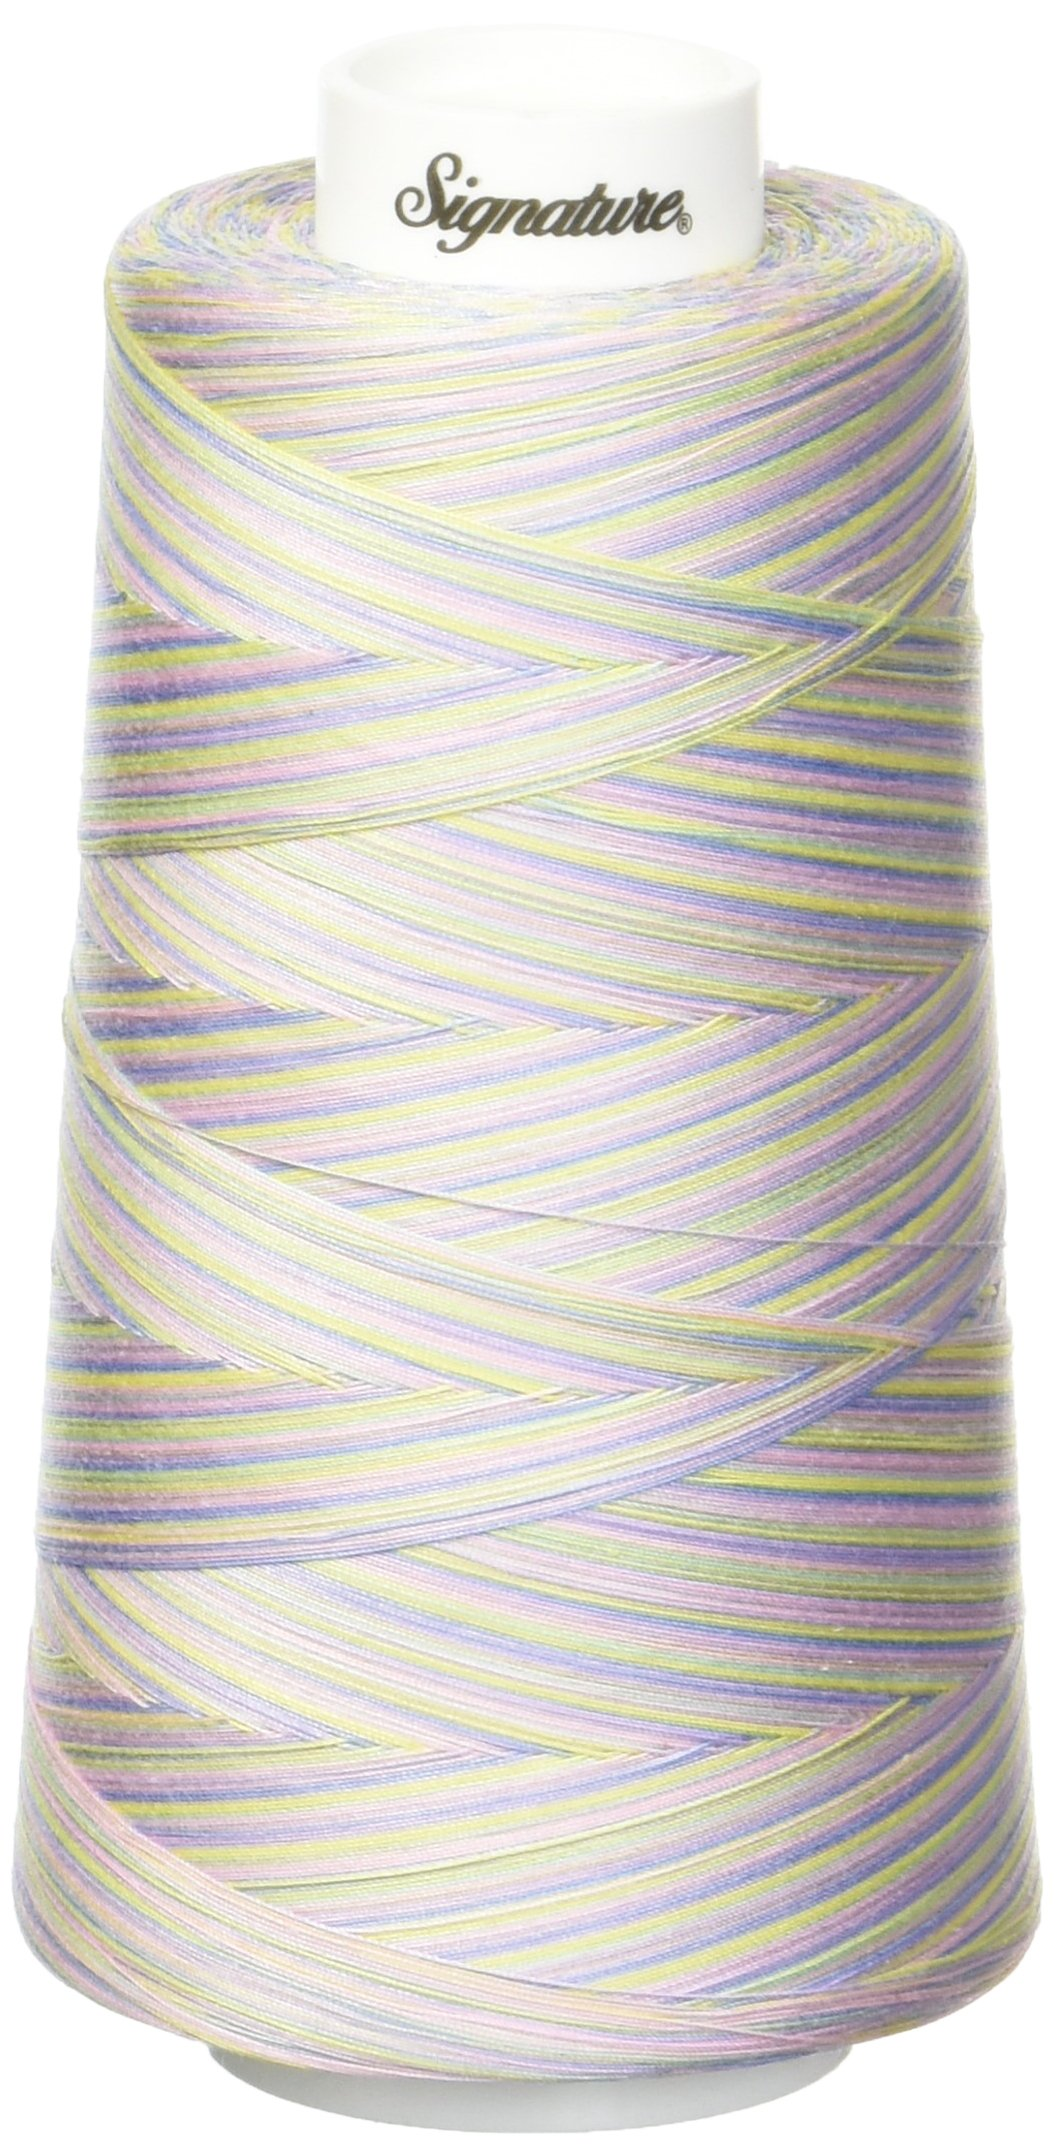 Signature Pastels Thread, 40wt/3000 yd, Variegated by Signature